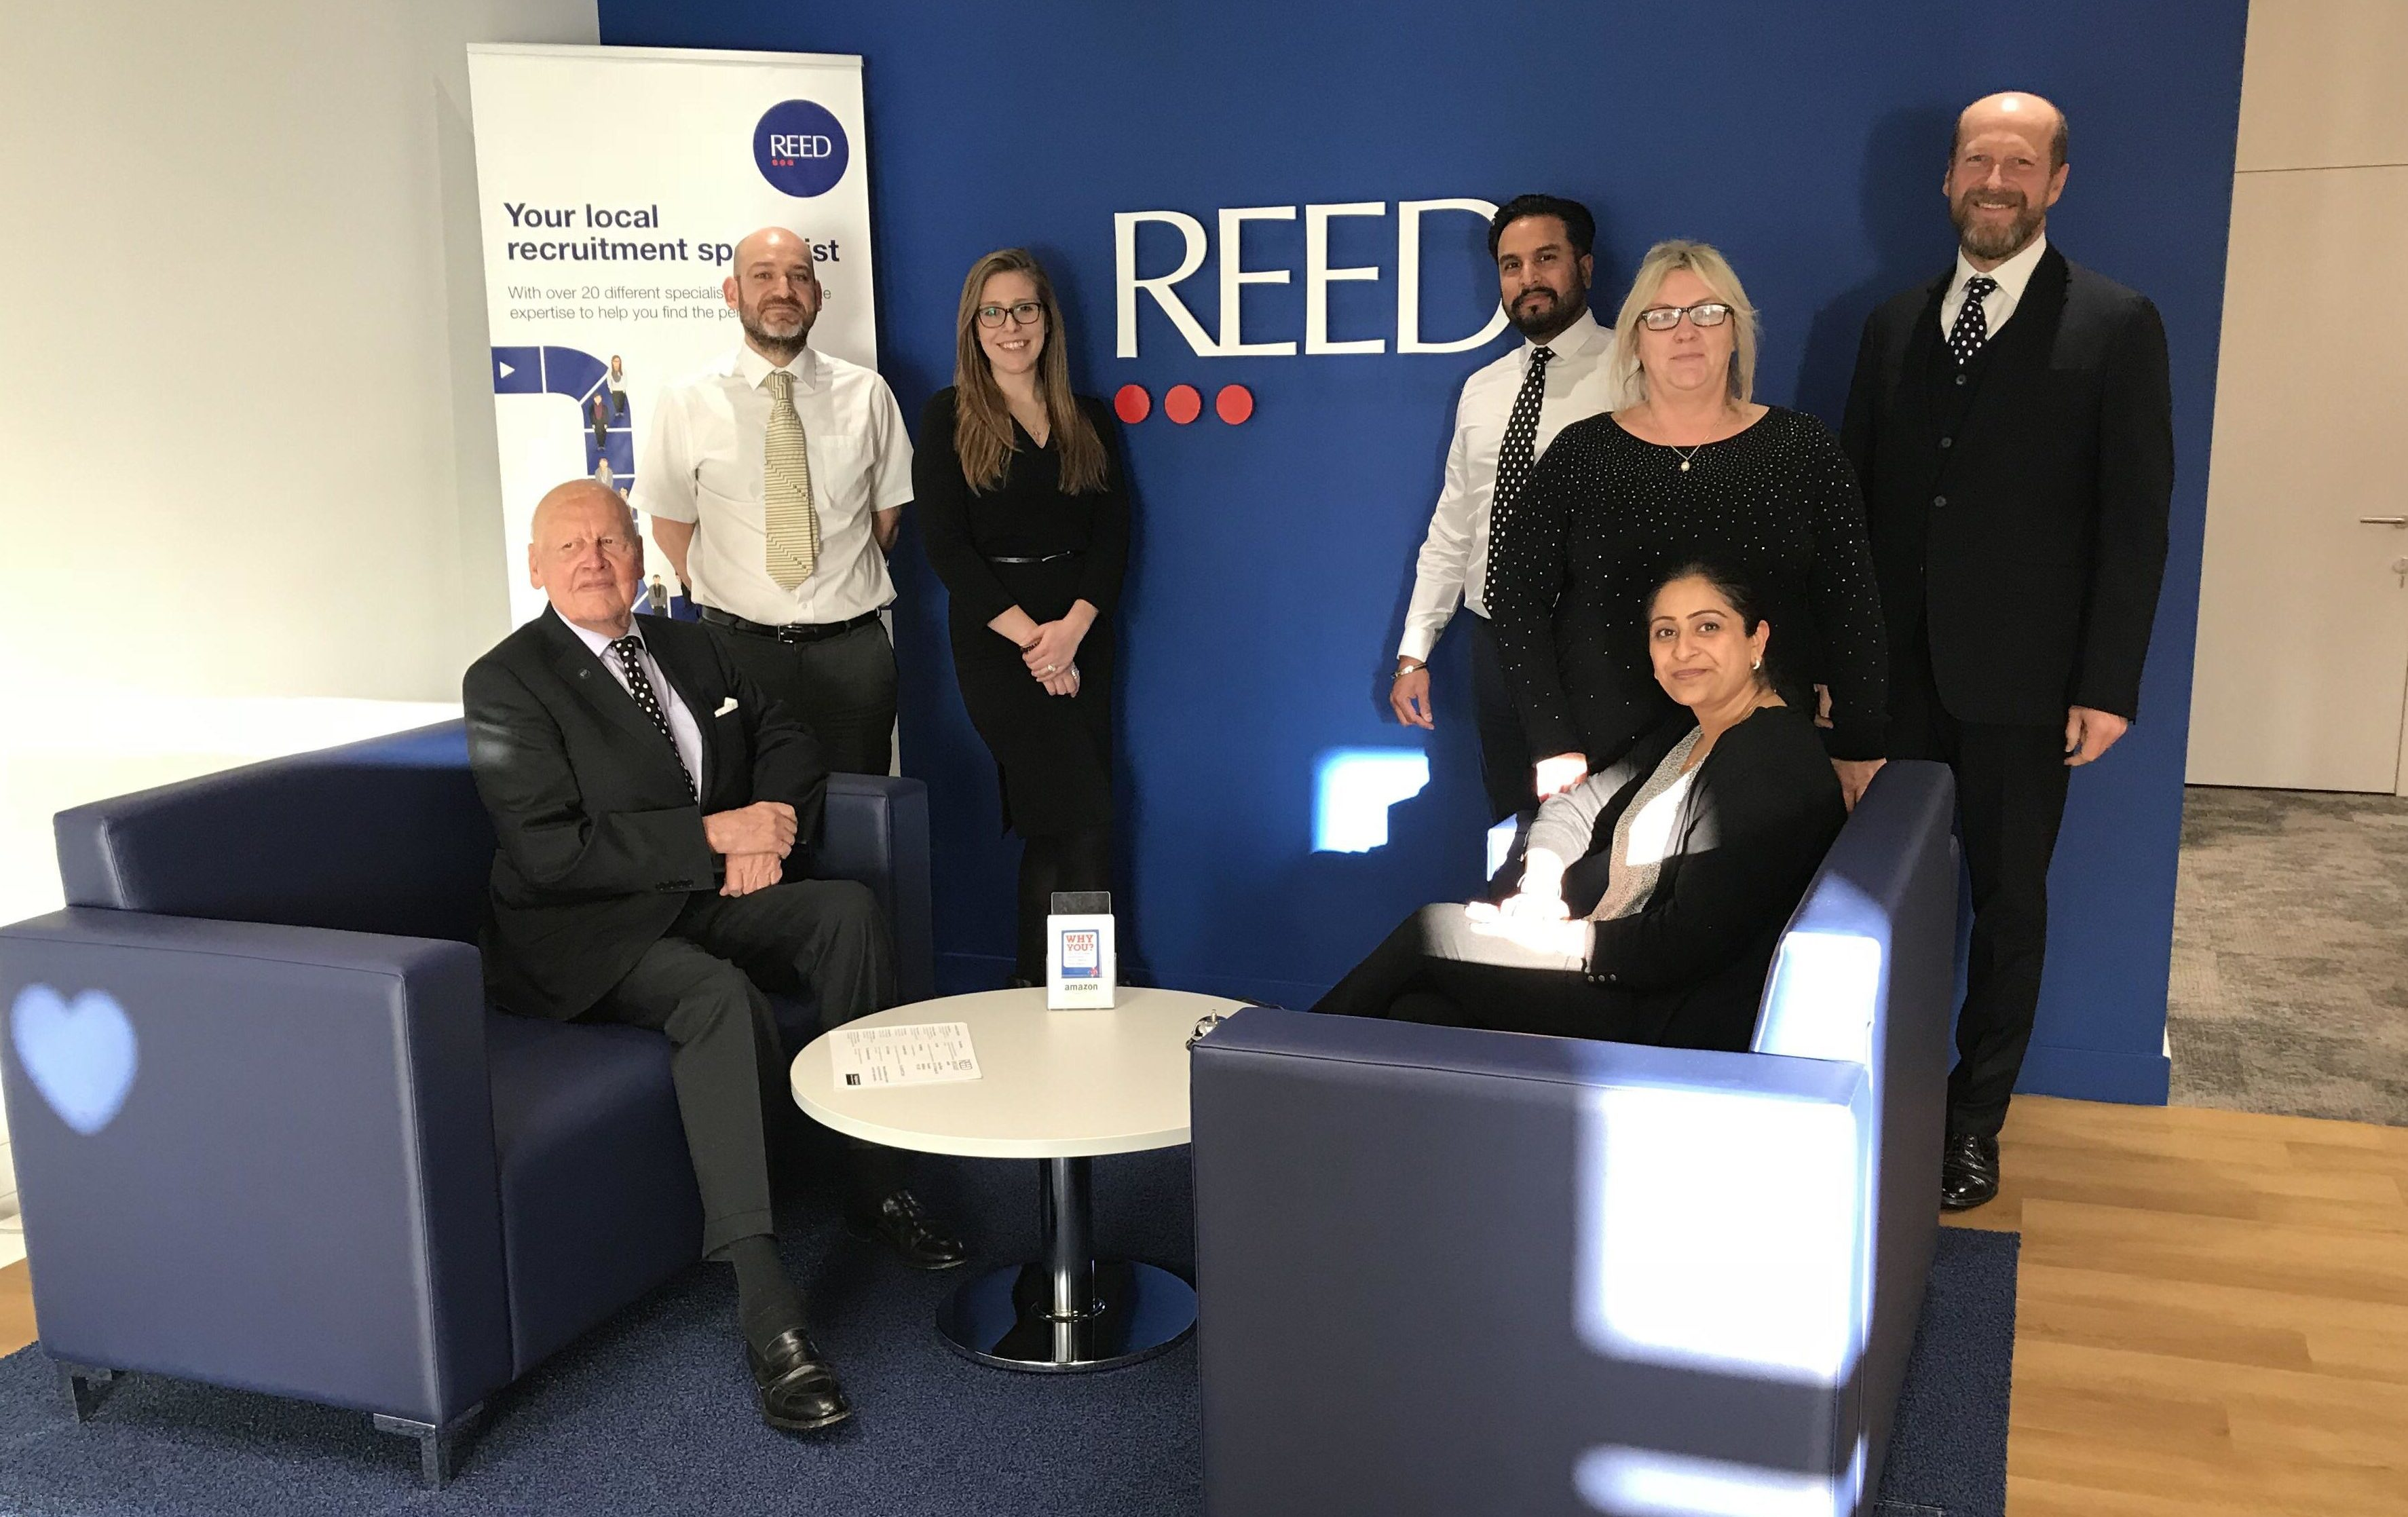 long service at reed - hounslow office 2018